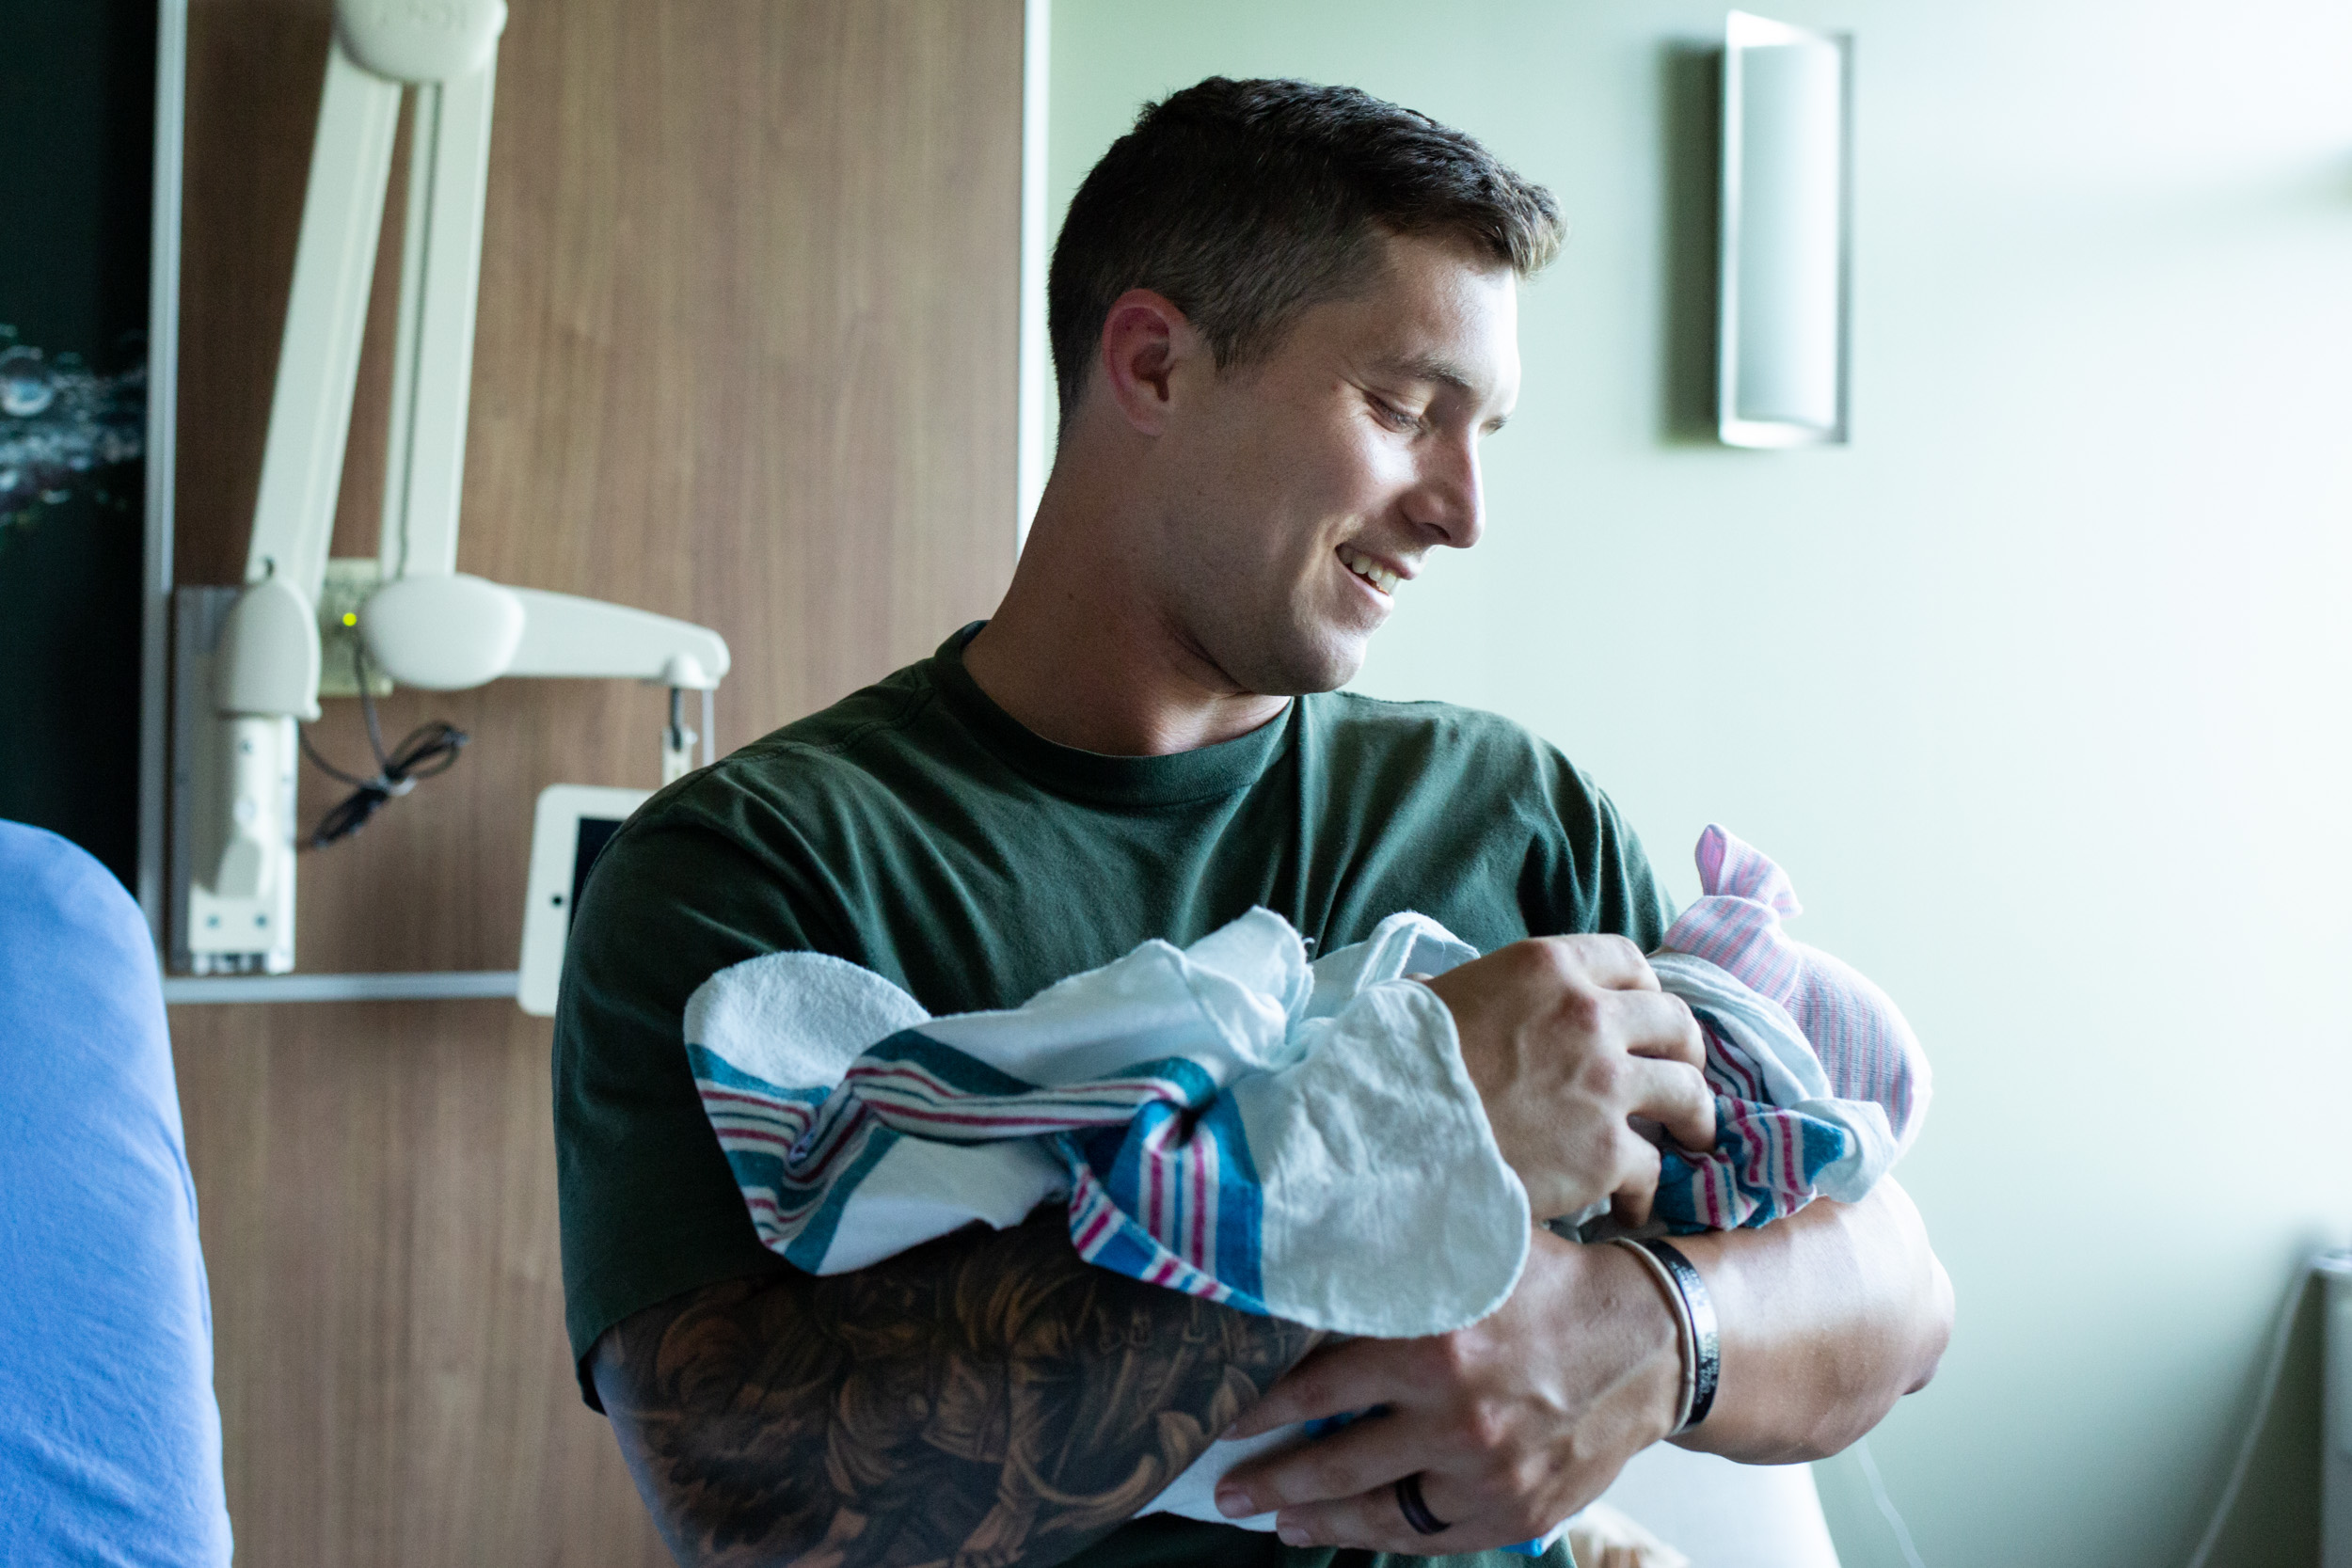 jacksonville birth dad smiling at newborn baby girl